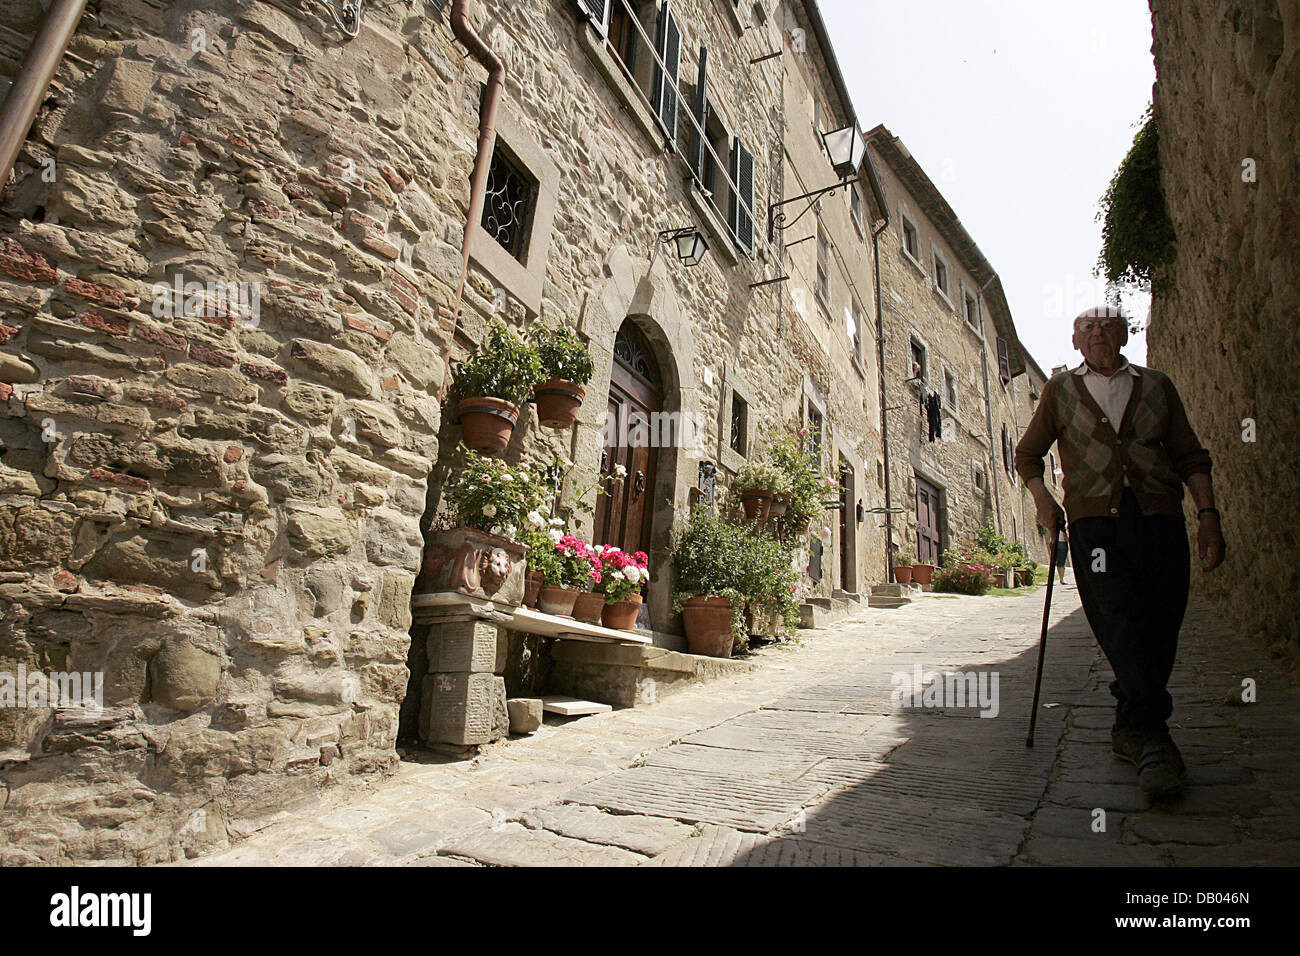 View into a street of Cortona, Italy, 23 May 2007. For the 5th time the 'Tuscan Sun Festival' takes place - Stock Image